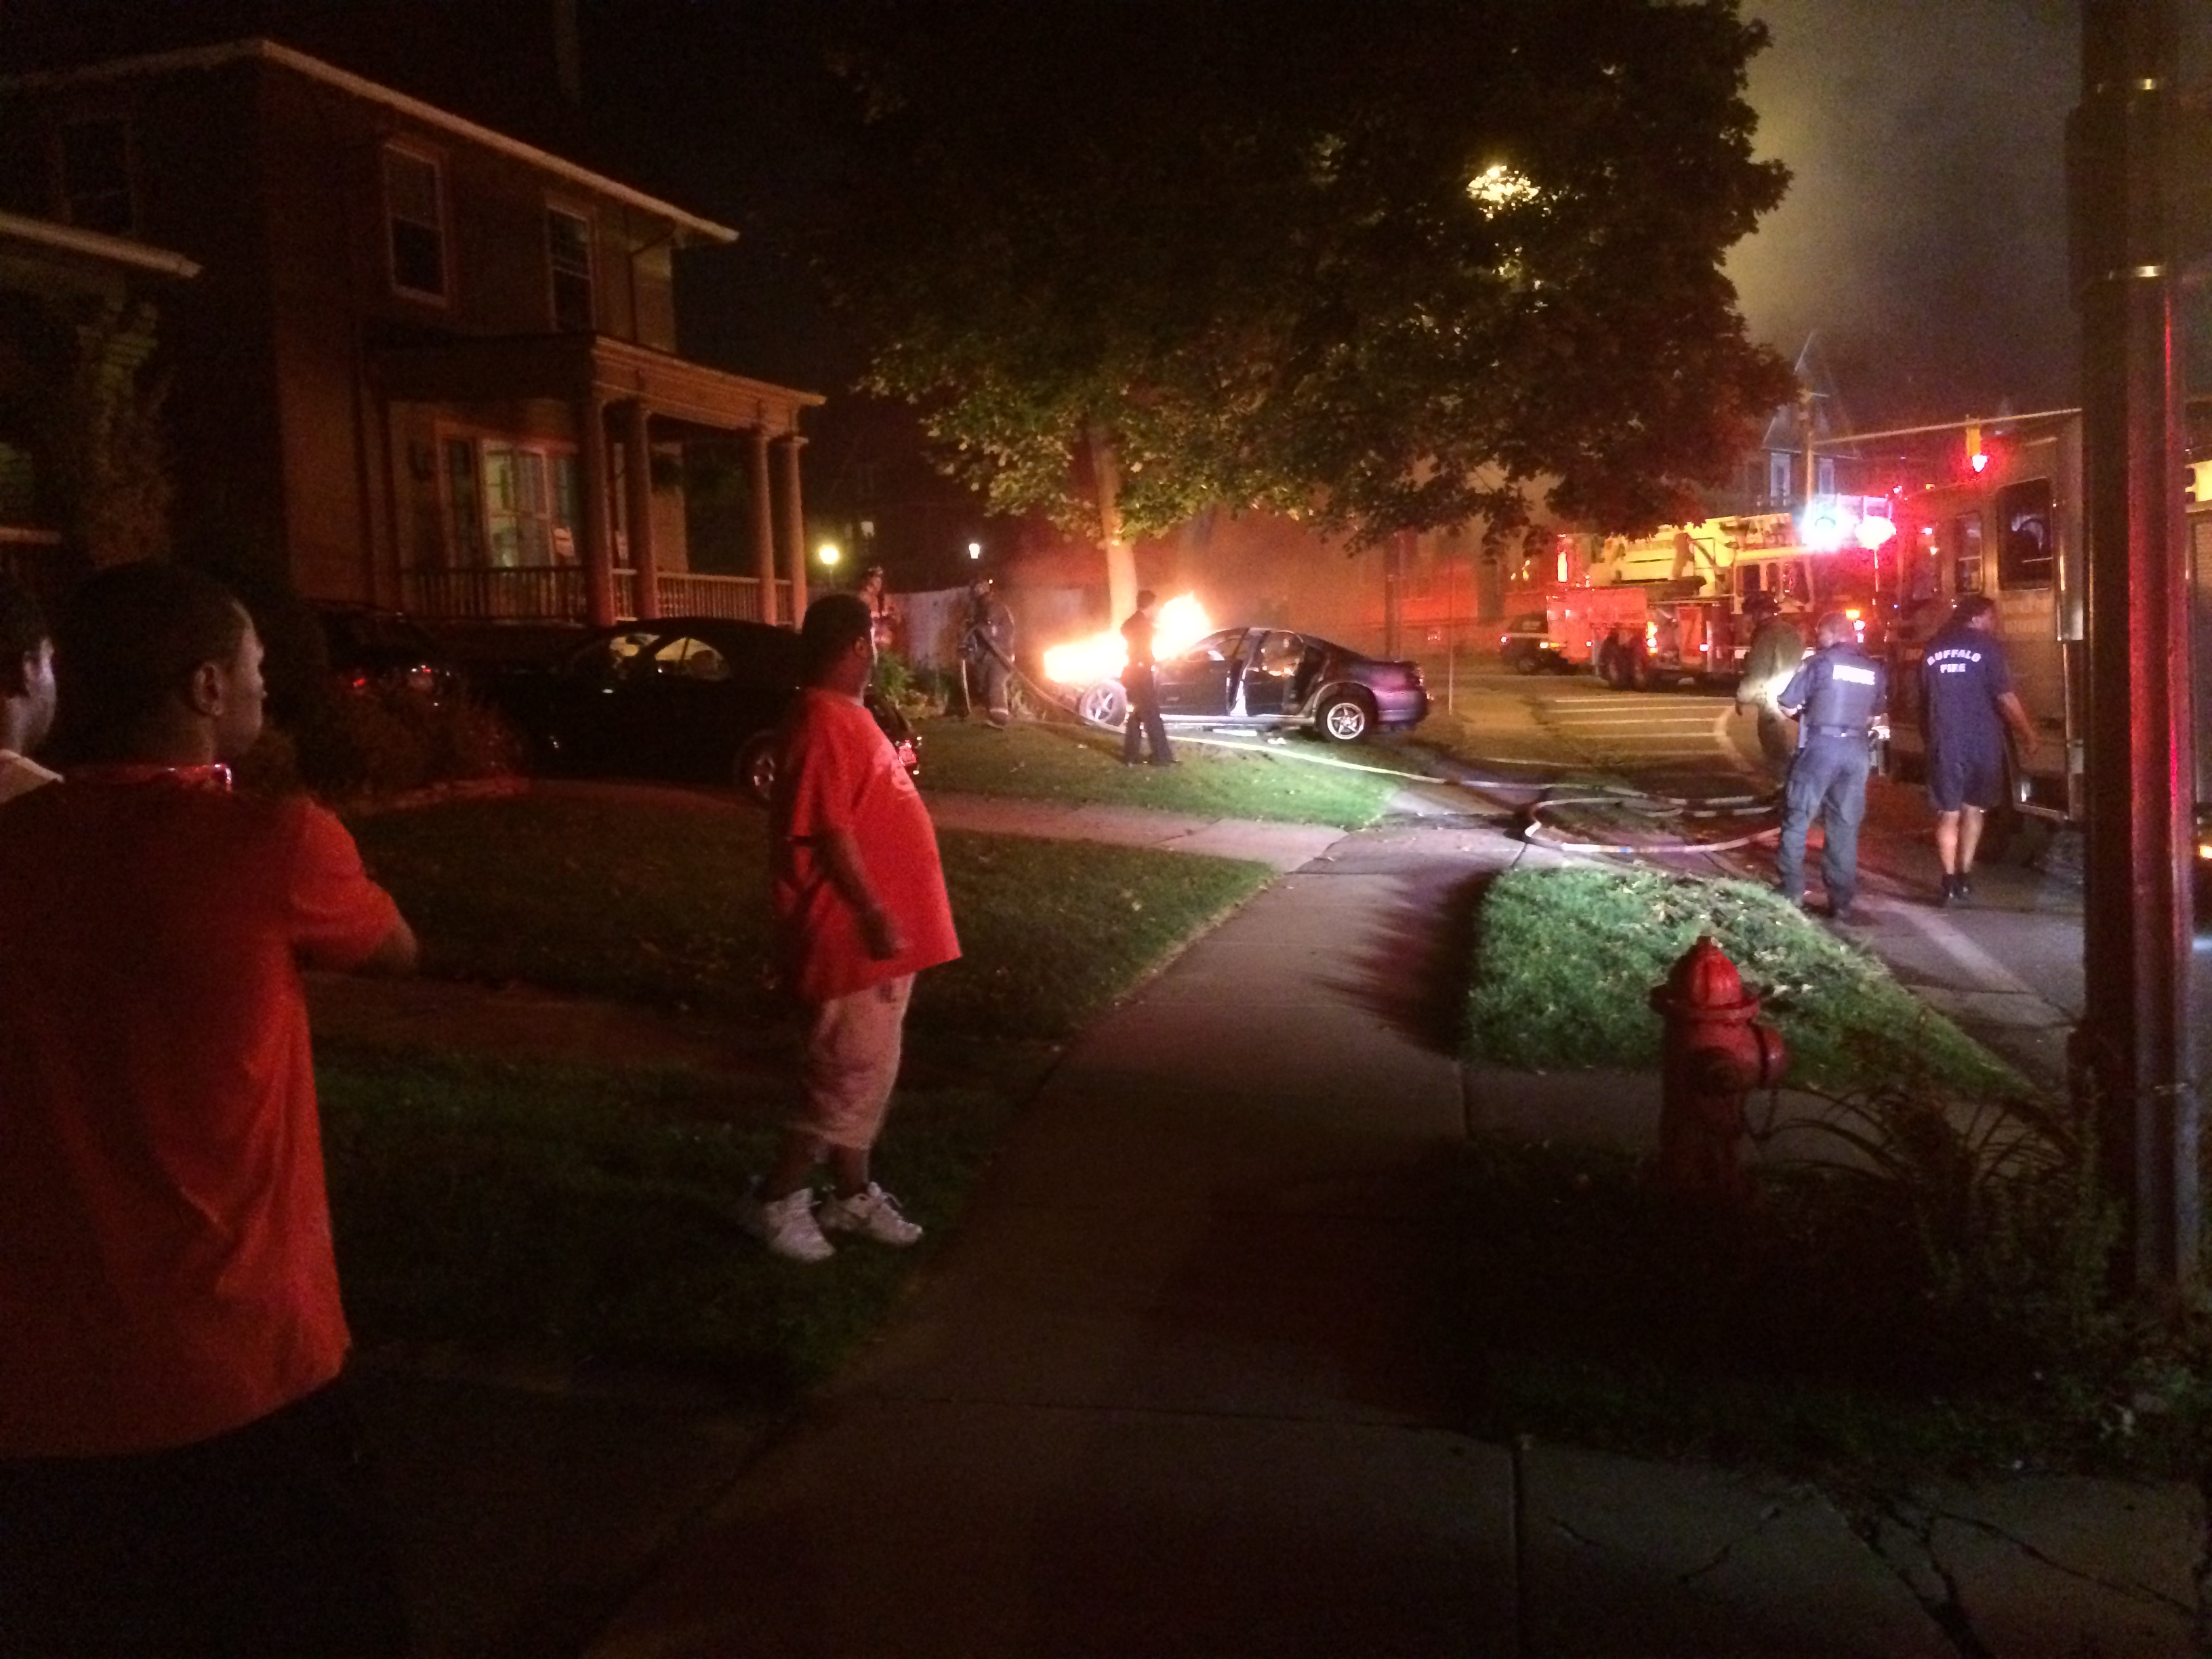 car on fire on the lawn Aug 2014